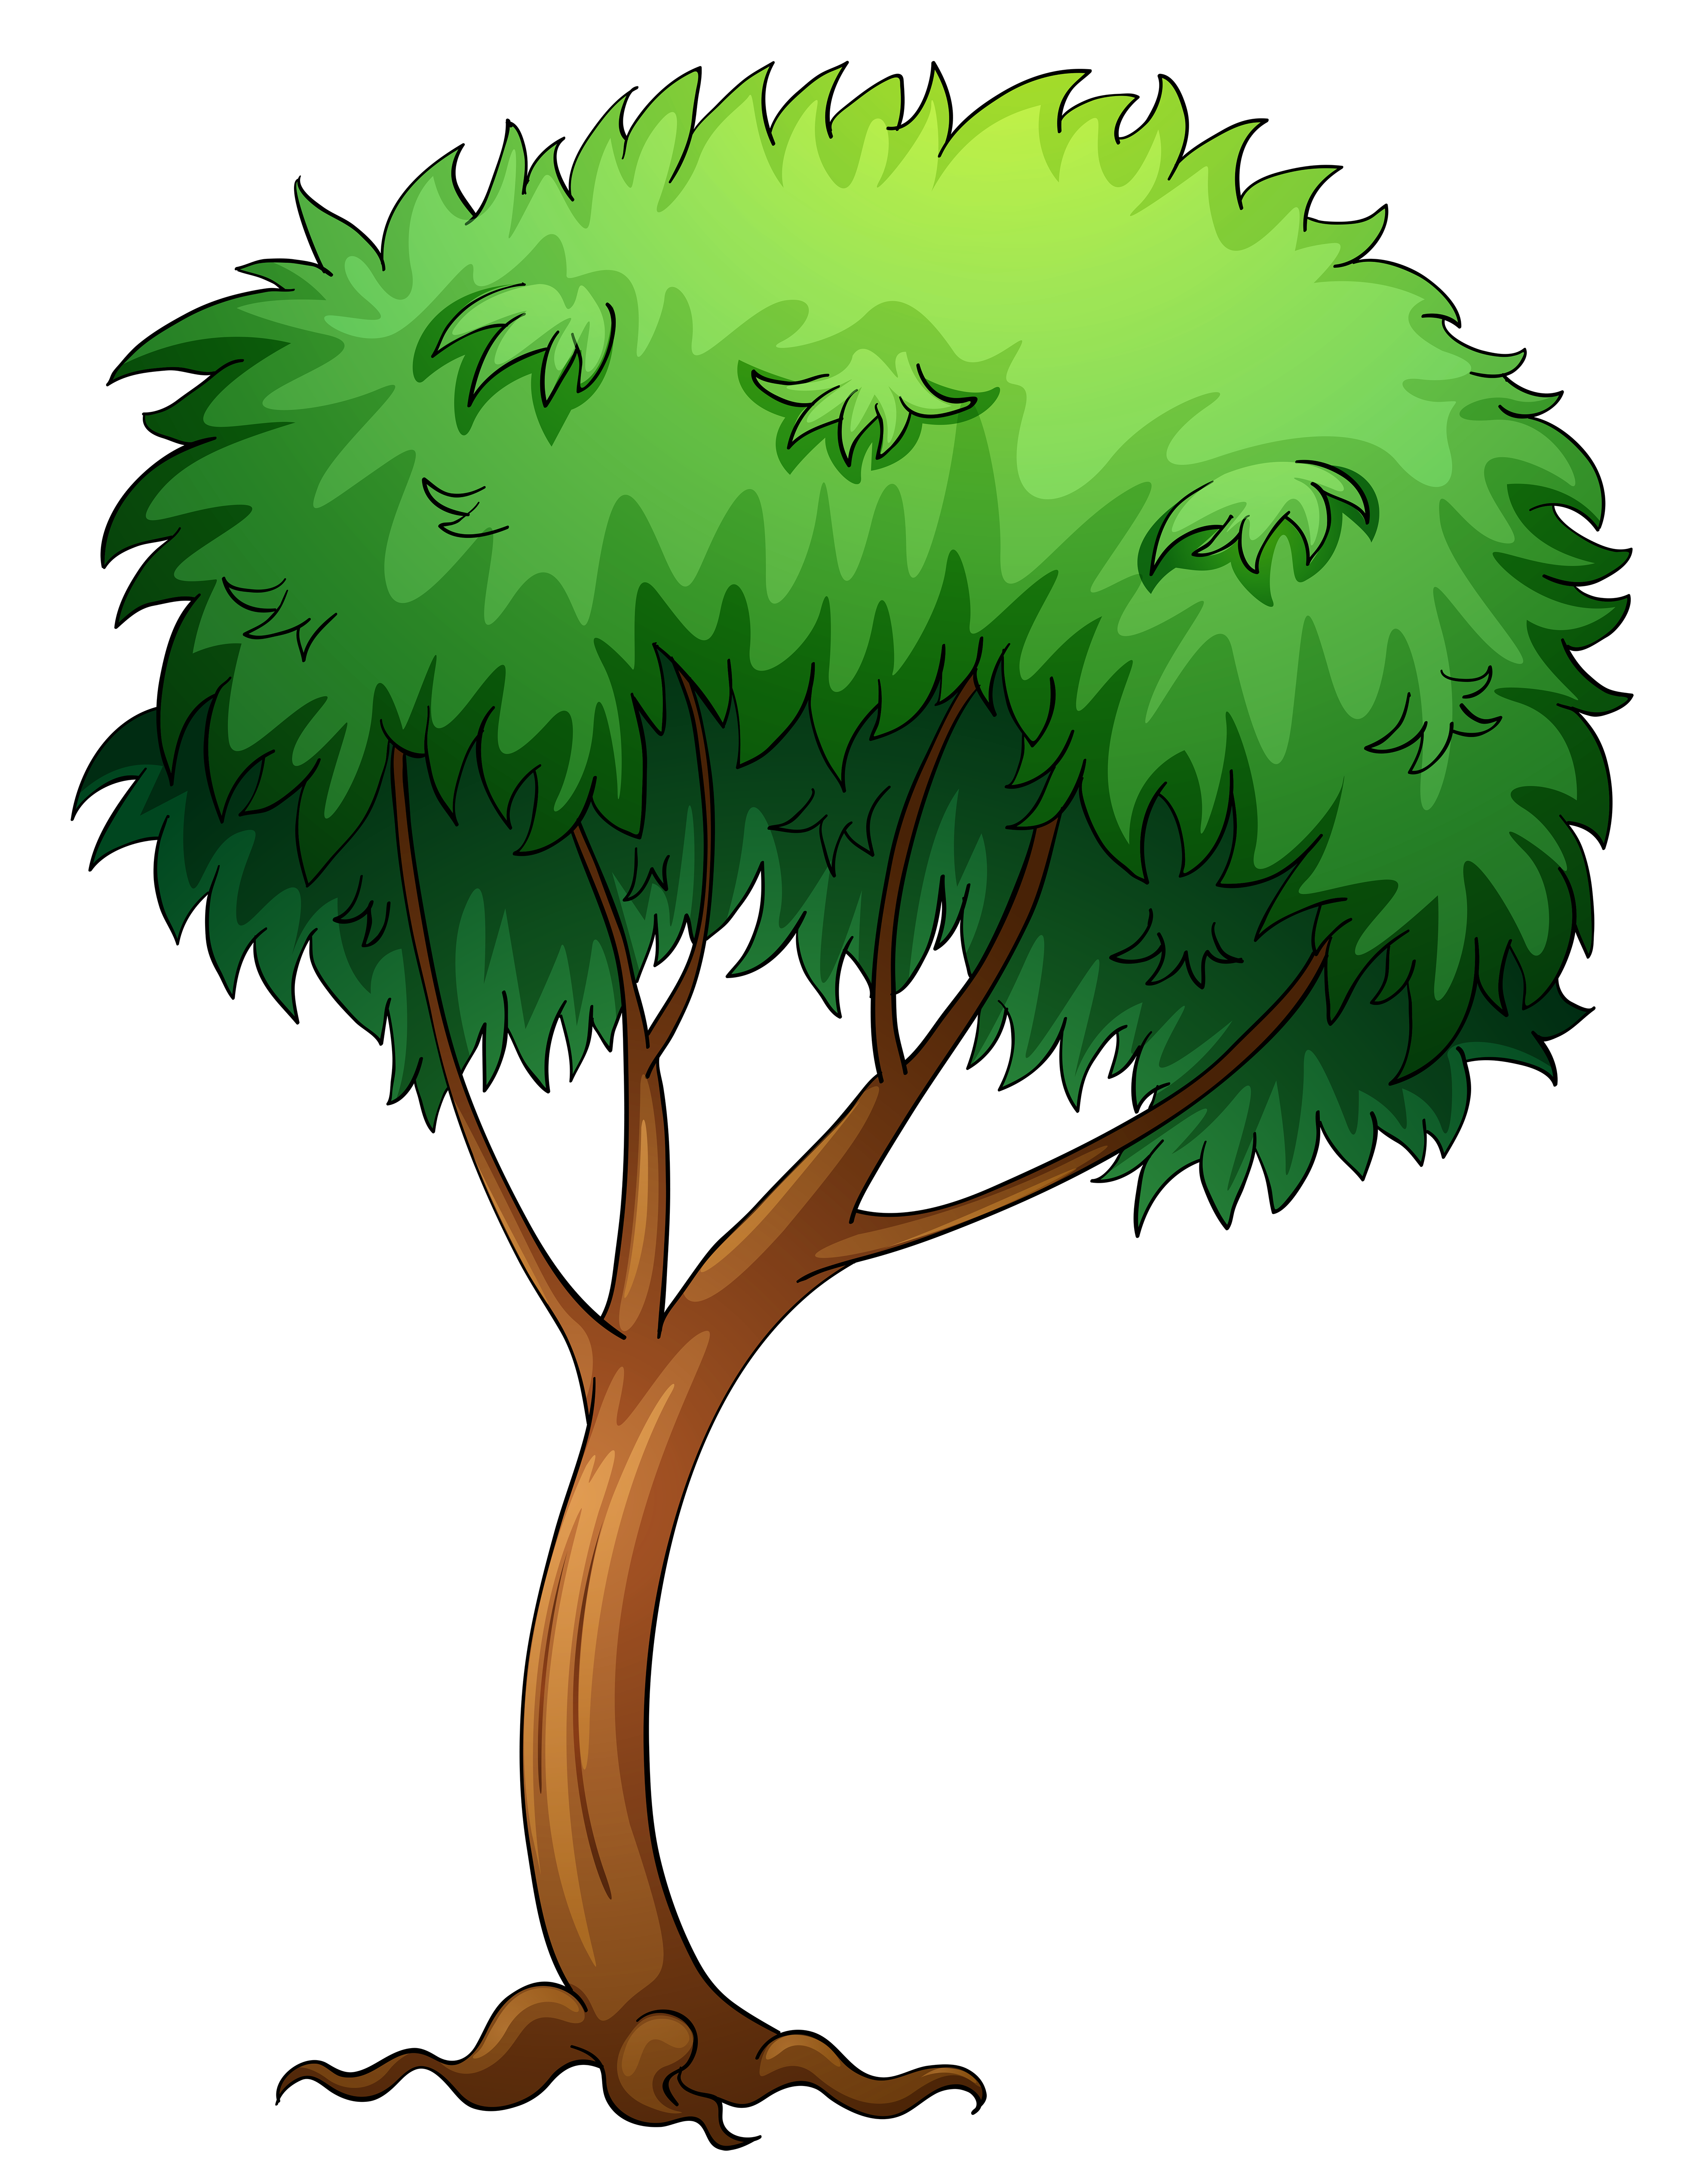 Flower tree clipart png svg stock Kids on tree clipart png - ClipartFest svg stock